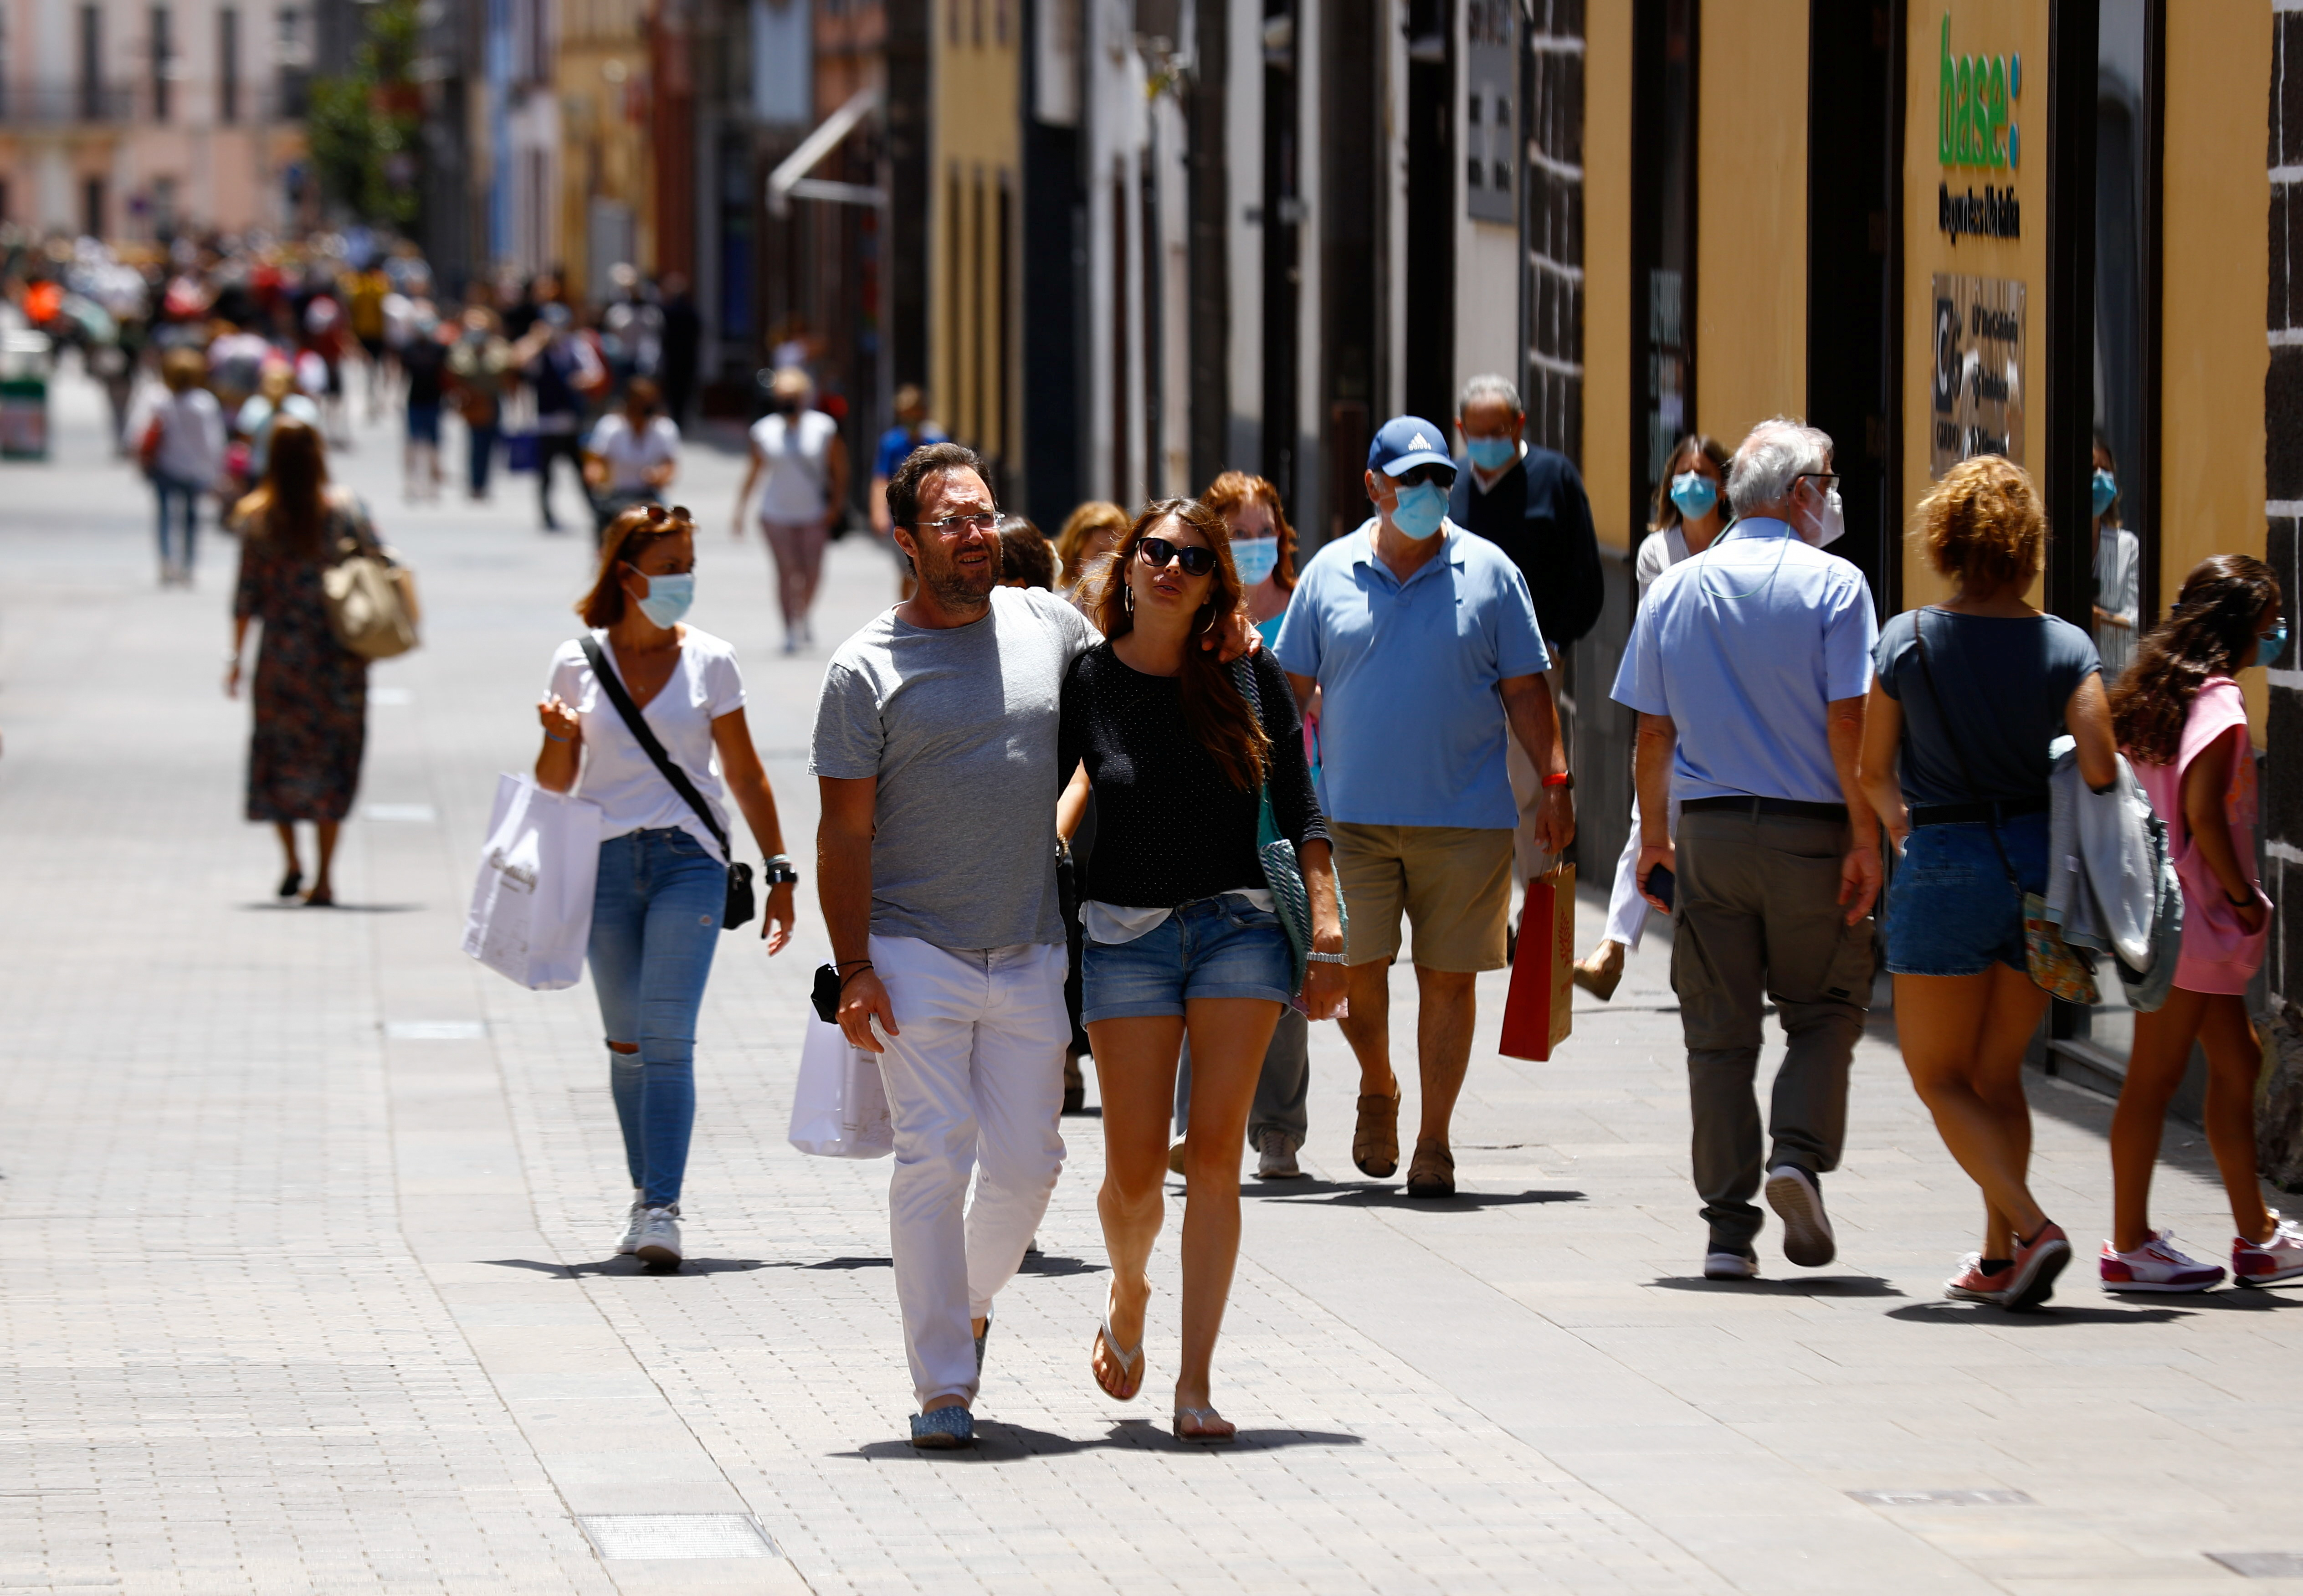 Two tourists walk without face masks in La Laguna on the day the Canary Islands government imposed stricter rules to control a surge in coronavirus disease (COVID-19) cases, on the island of Tenerife, Spain, July 26, 2021. REUTERS/Borja Suarez